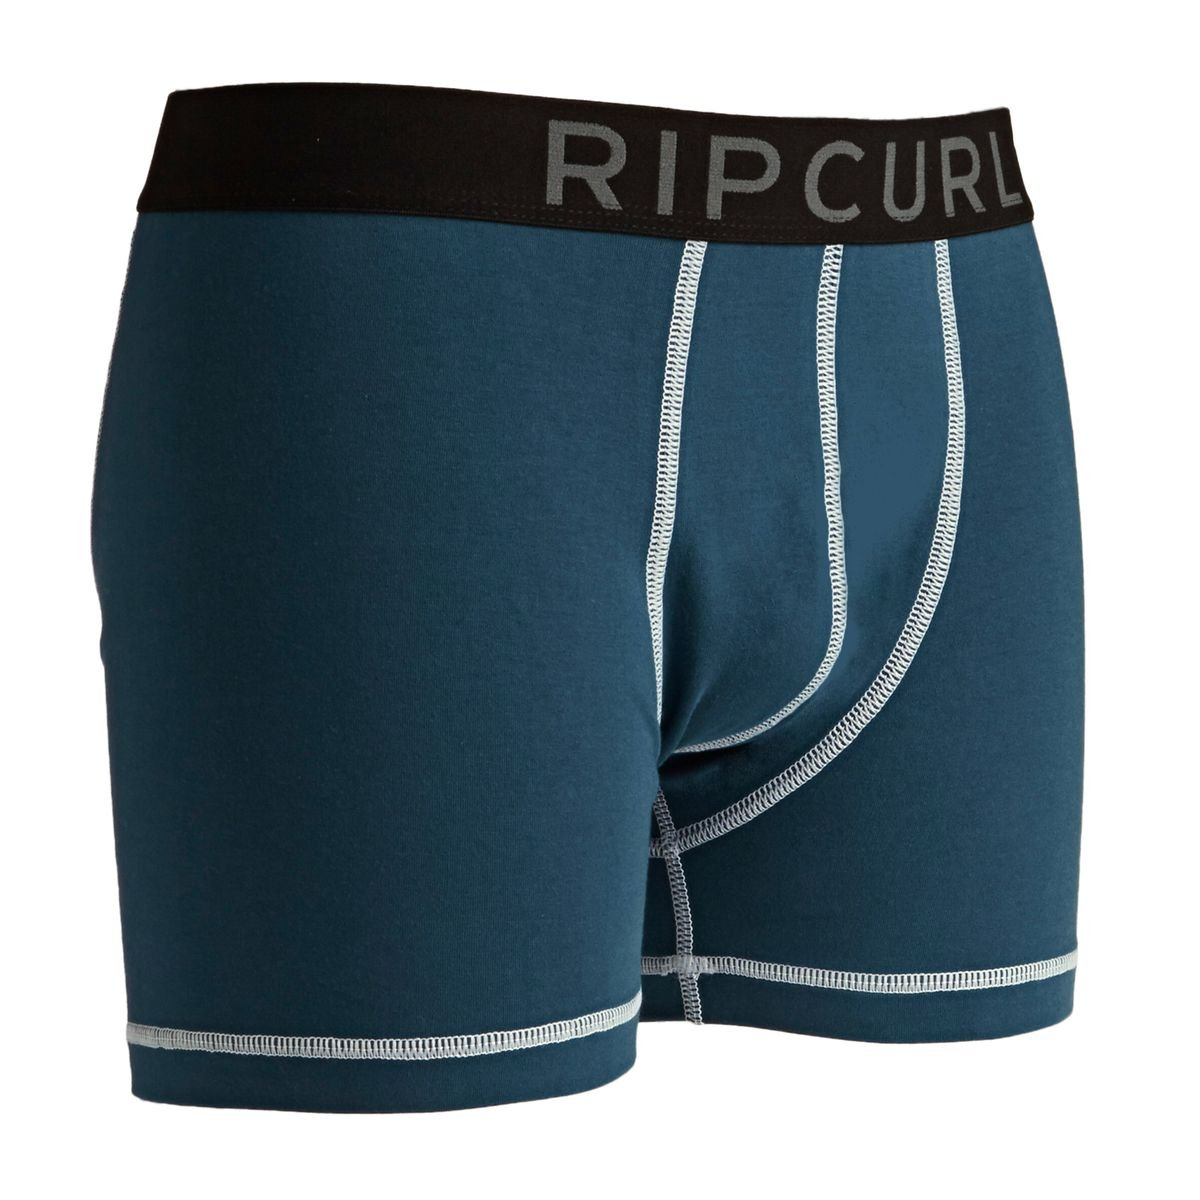 boxer shorts meaning